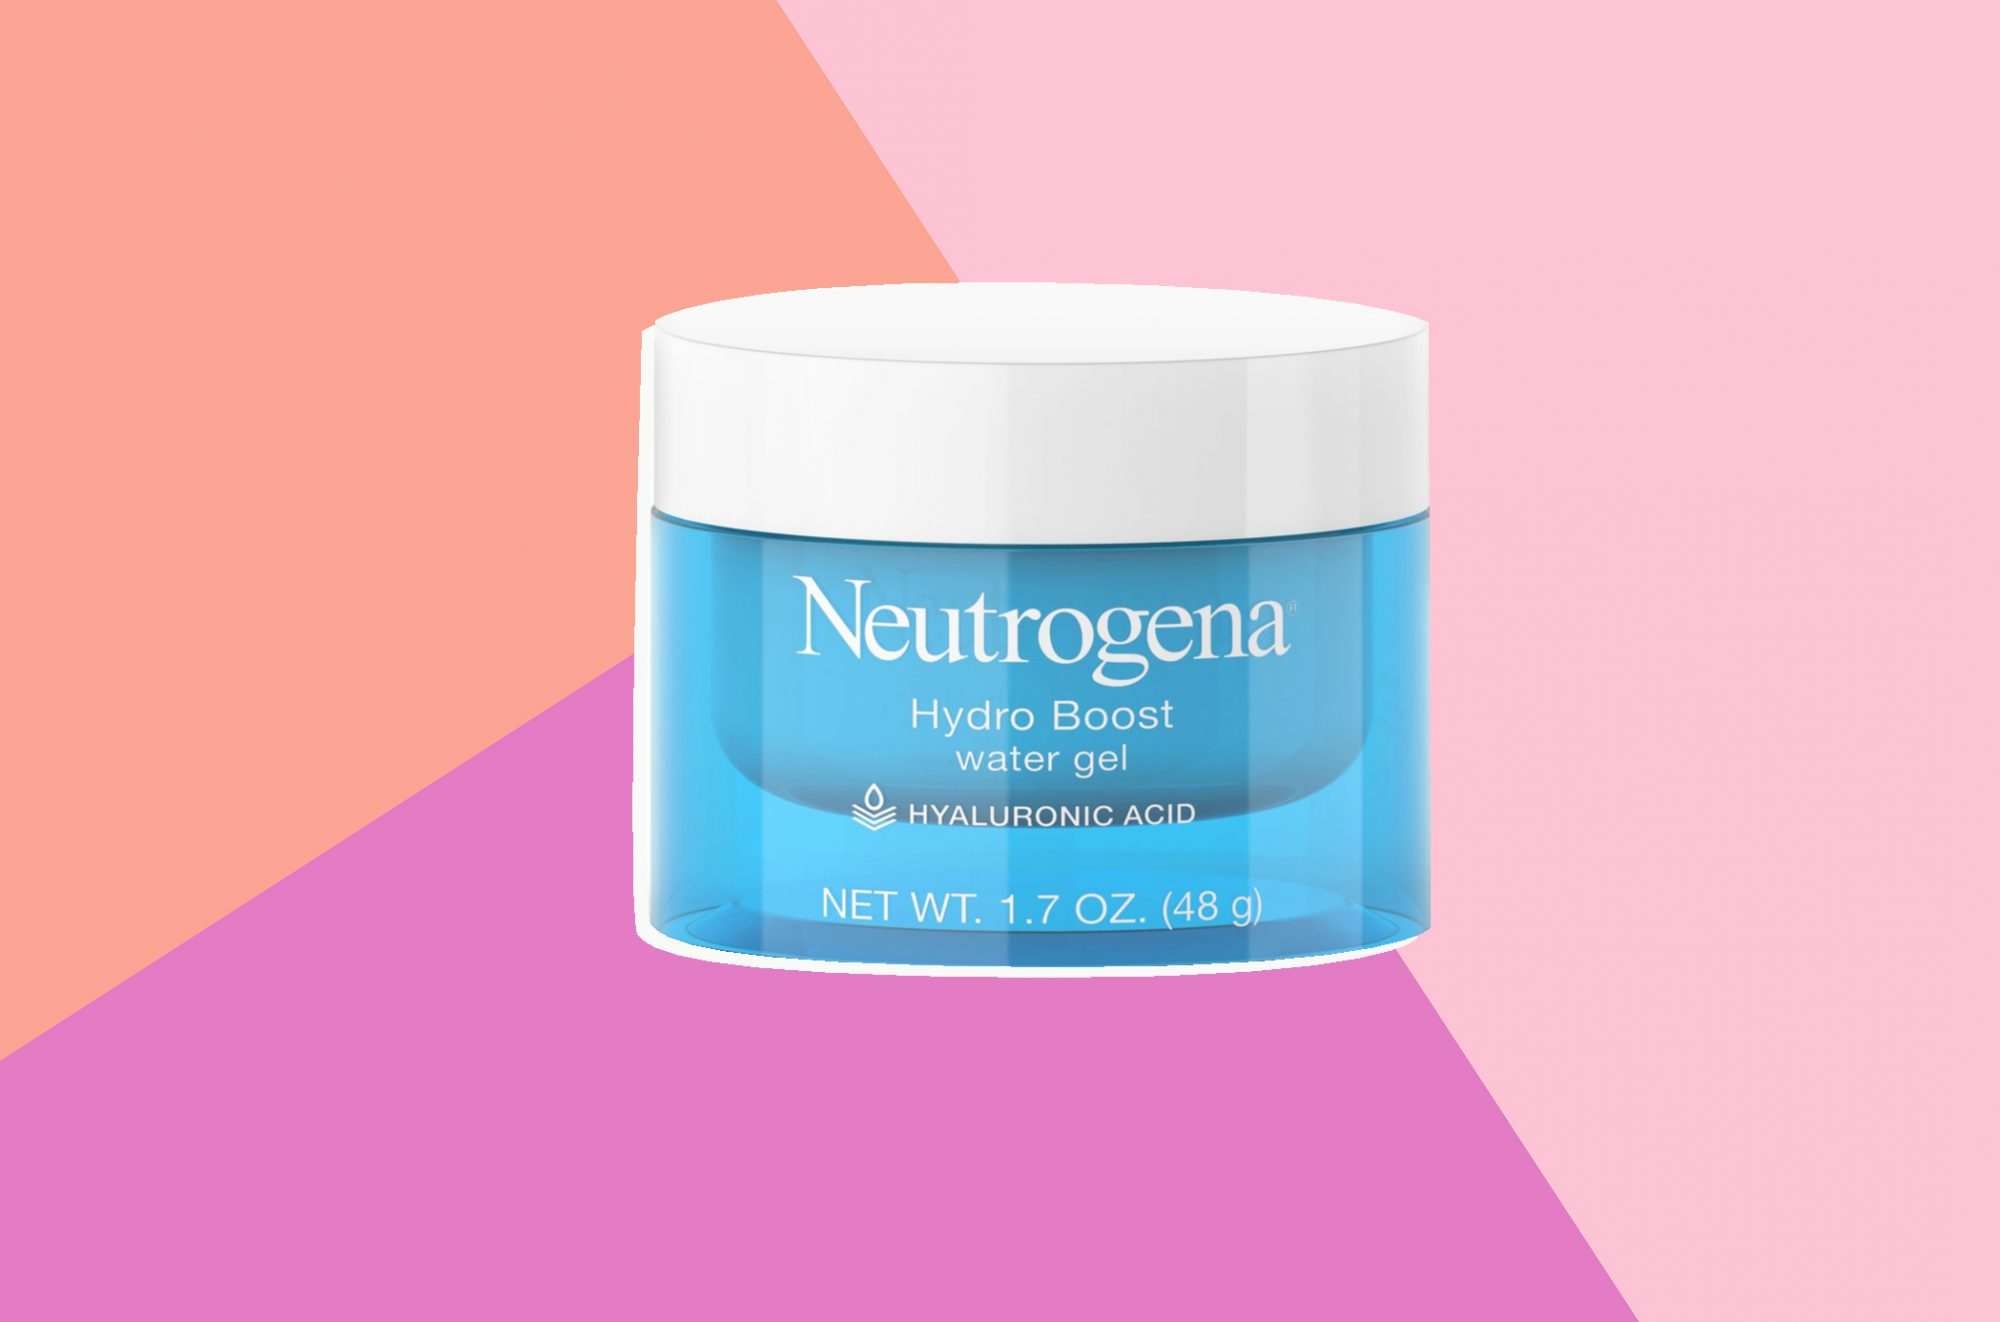 The Best Anti-Aging Products of All Time, According to Top Dermatologists